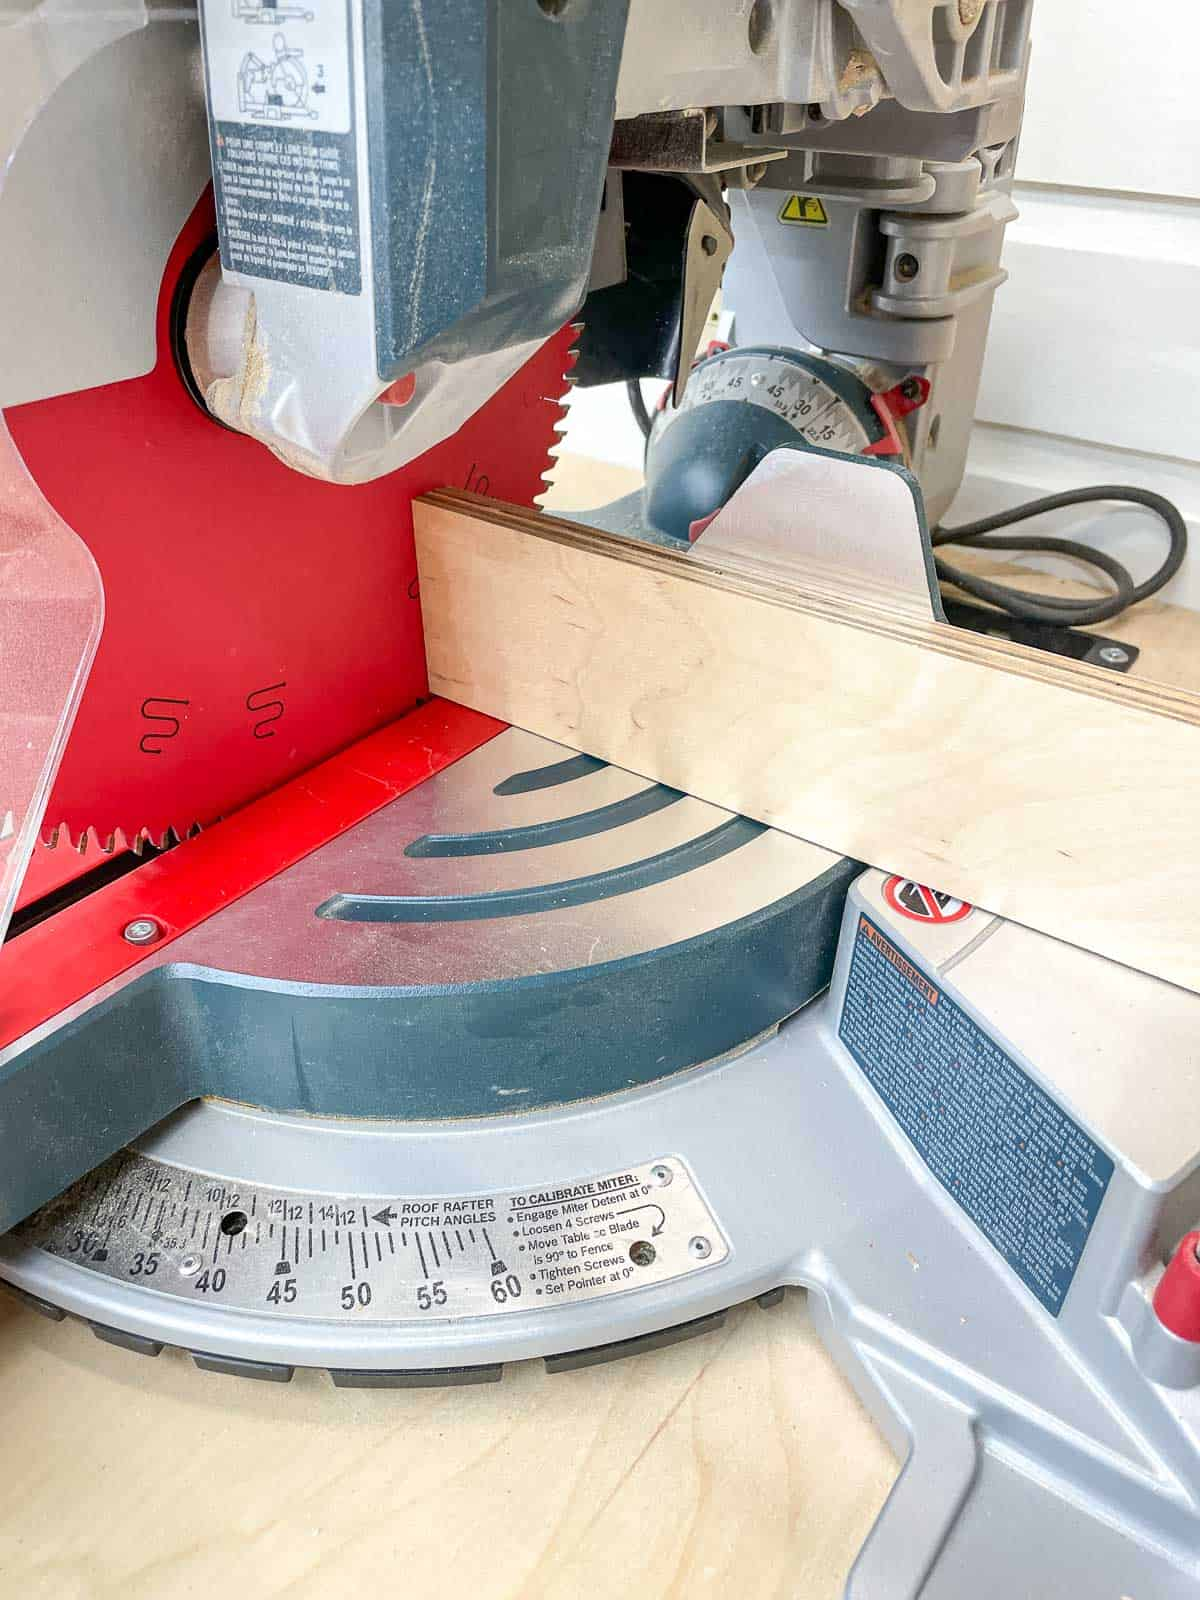 cutting the extension fence on the miter saw